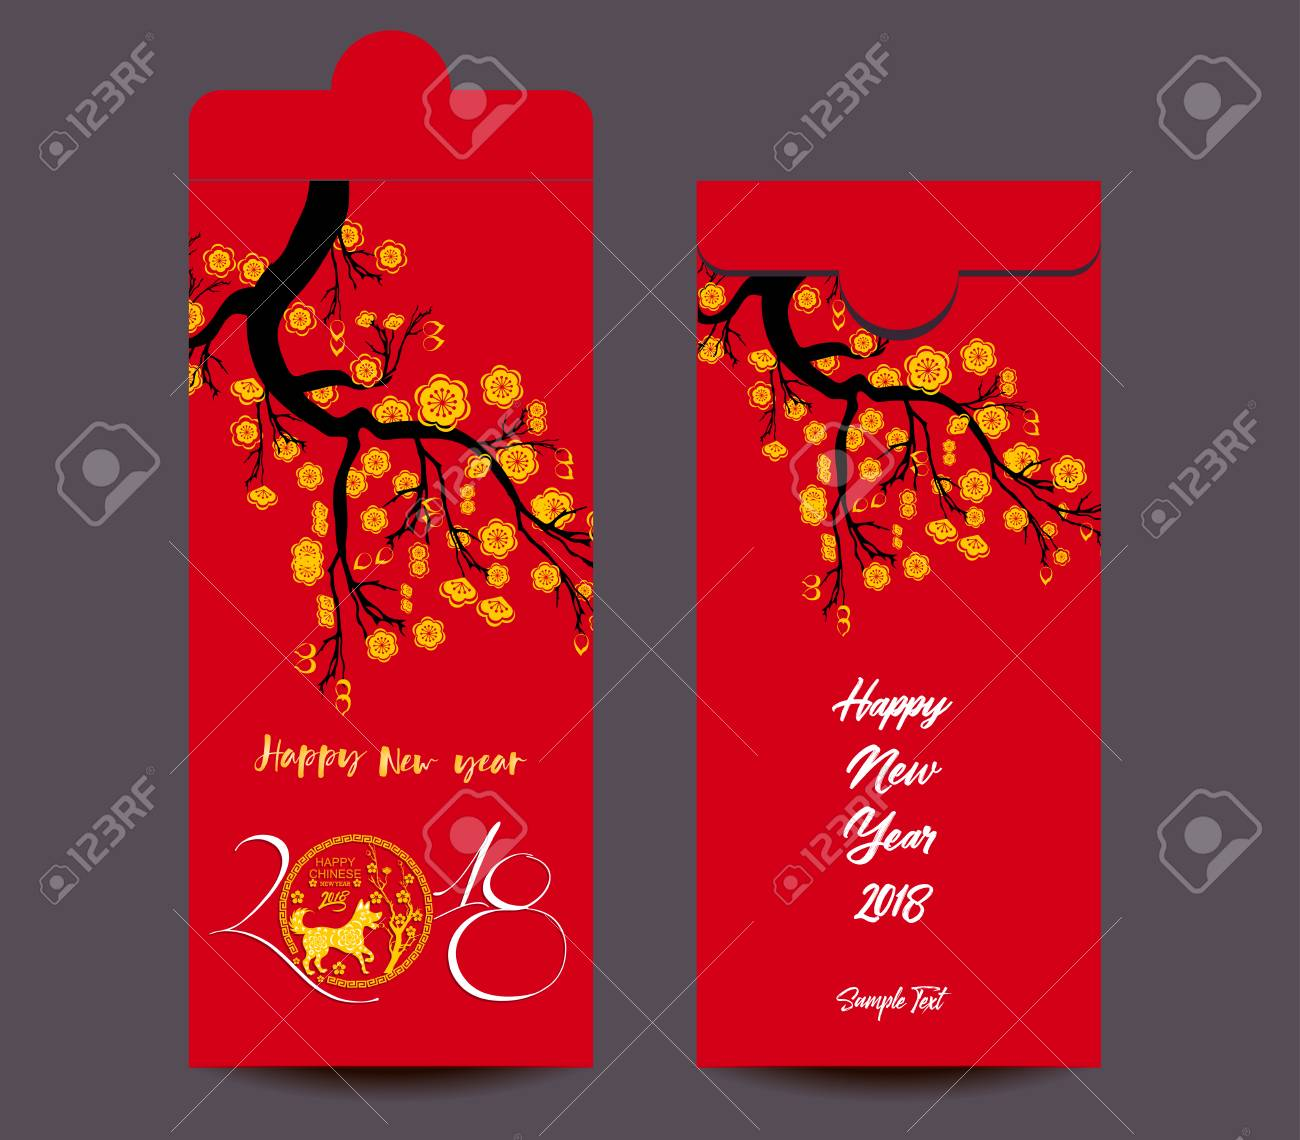 chinese new year red envelope flat icon year of the dog 2018 stock vector